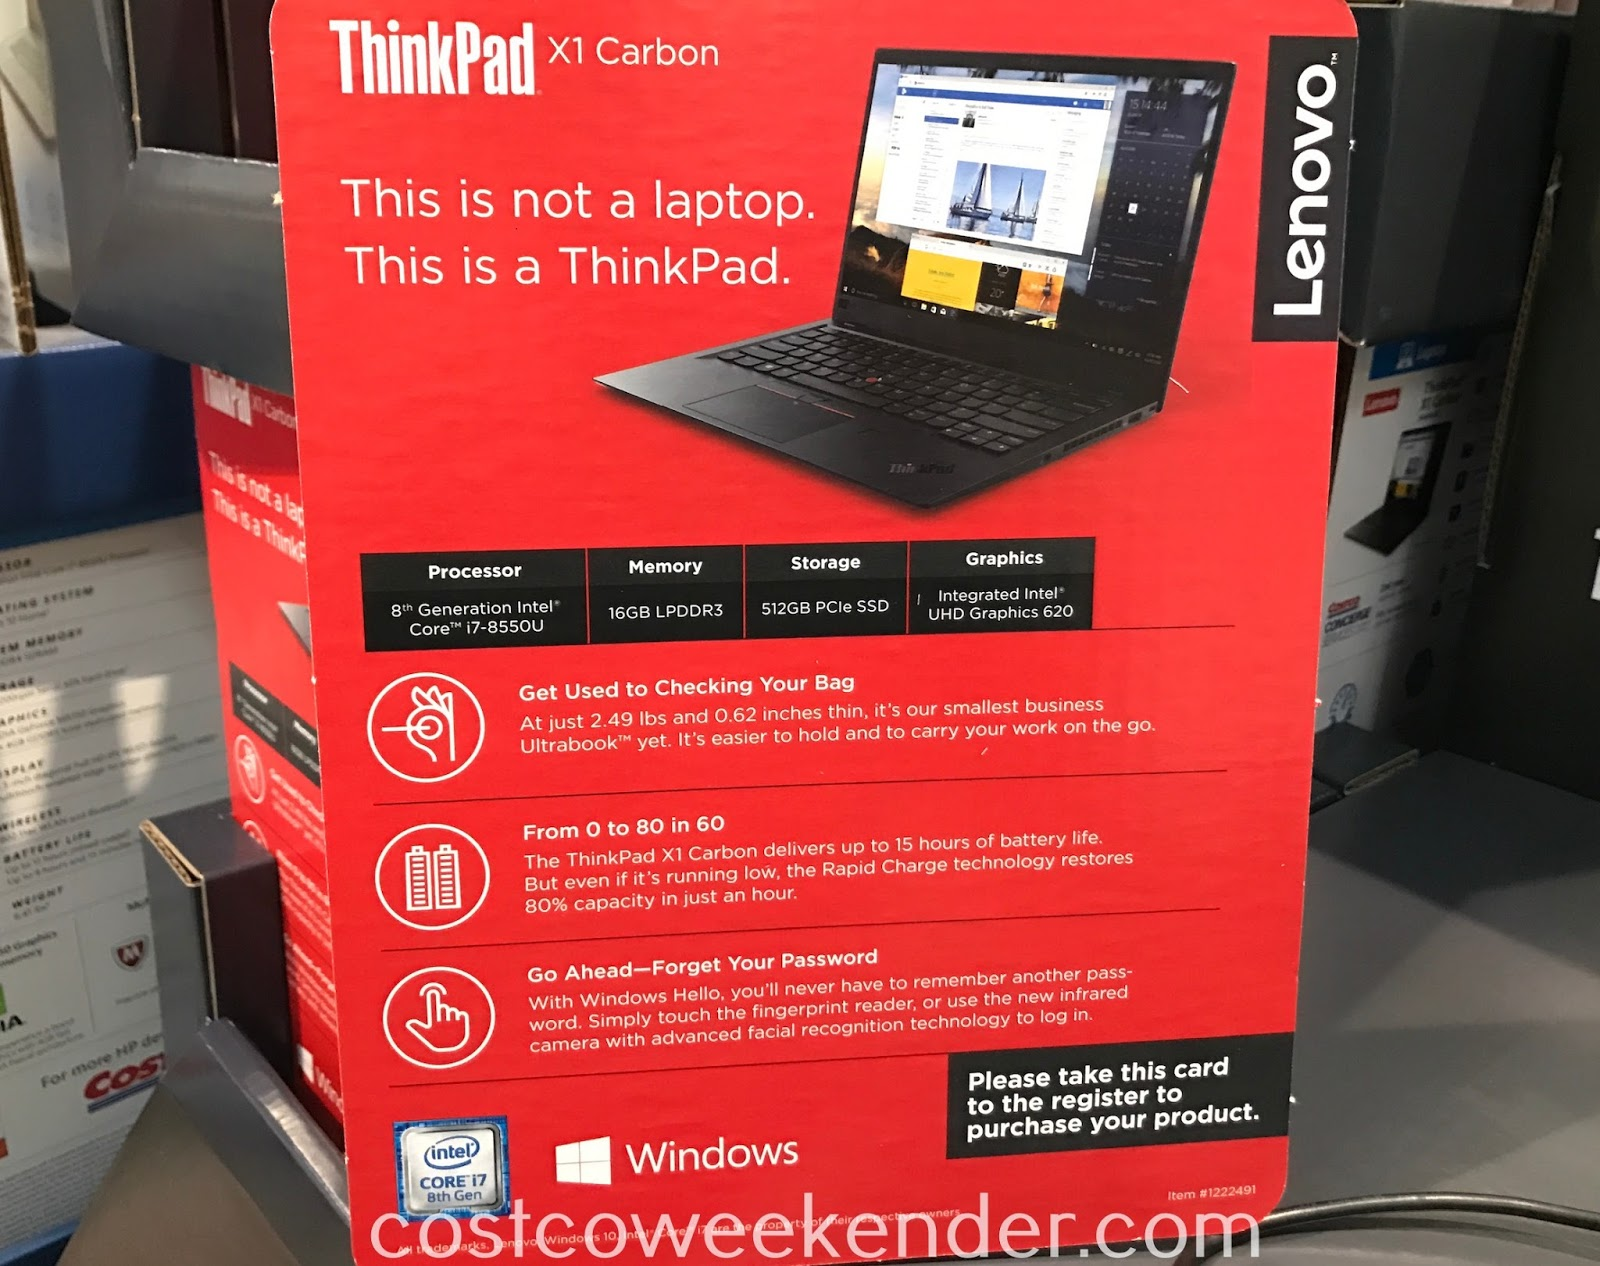 The Lenovo ThinkPad X1 Carbon Laptop has everything you need in a computer